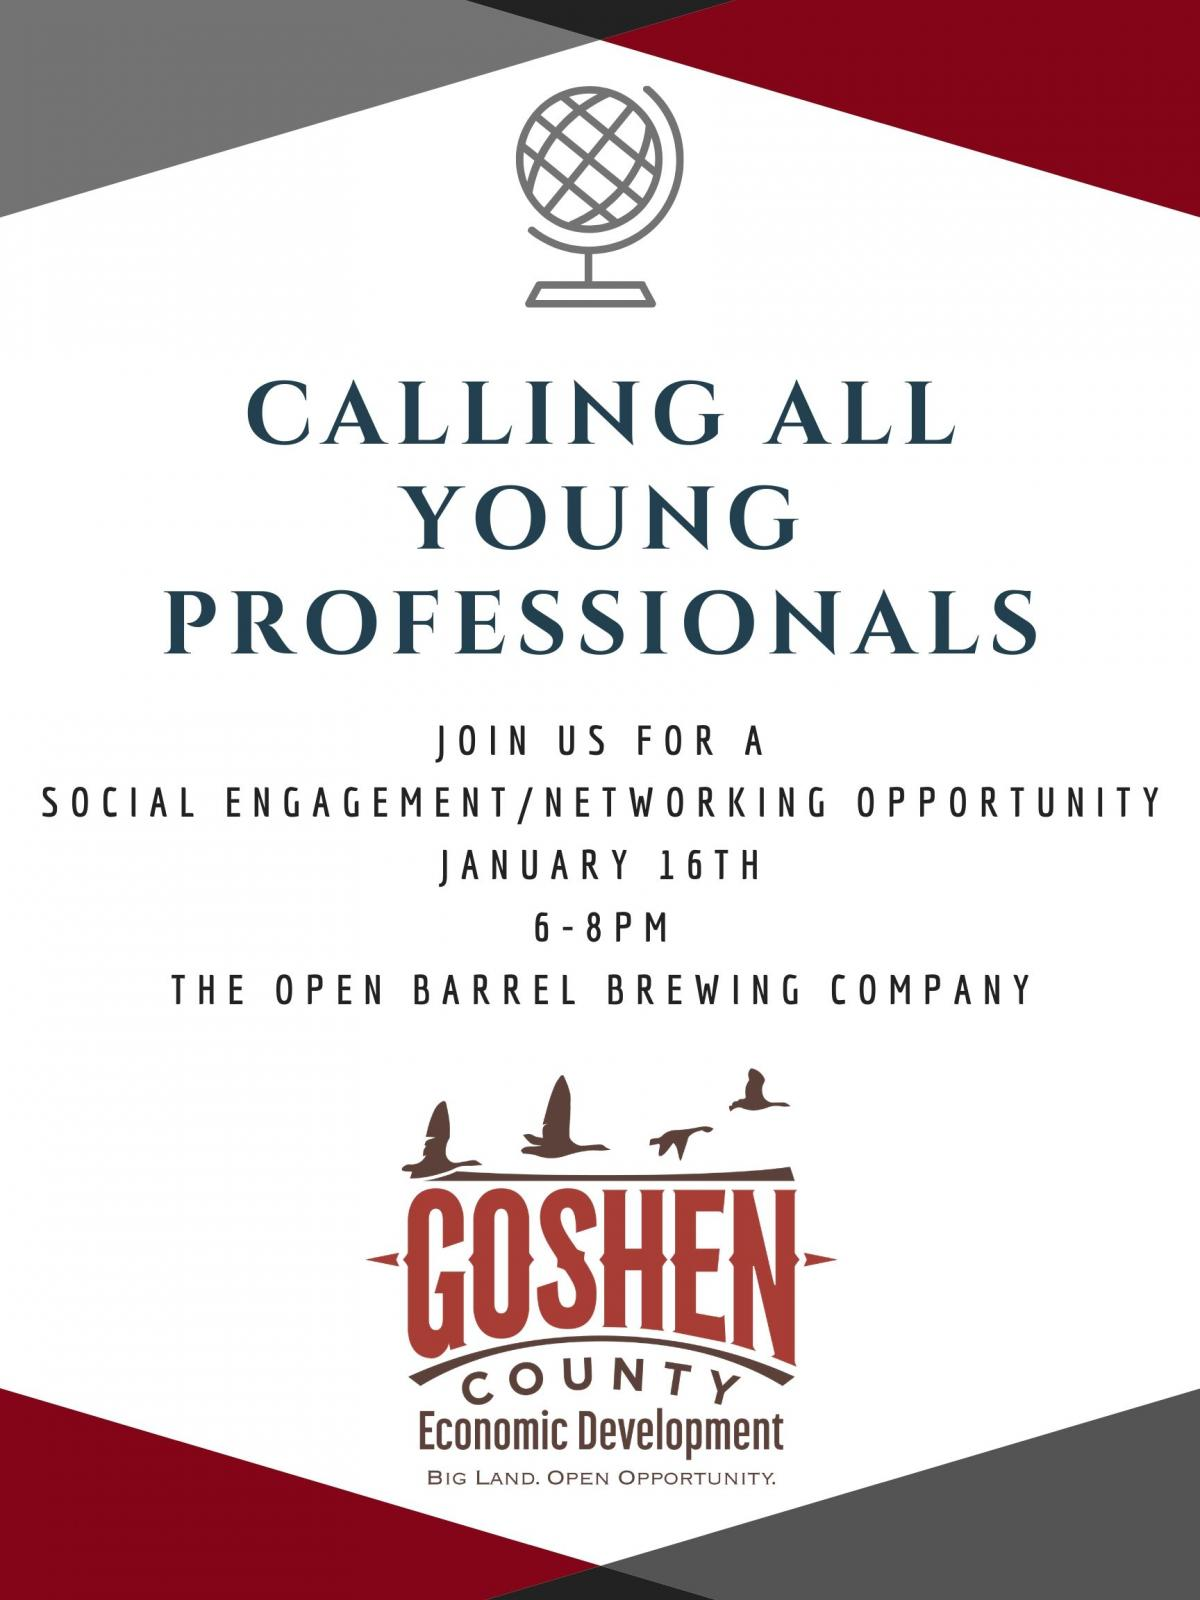 Calling All Young Professionals to a Social Engagement Photo